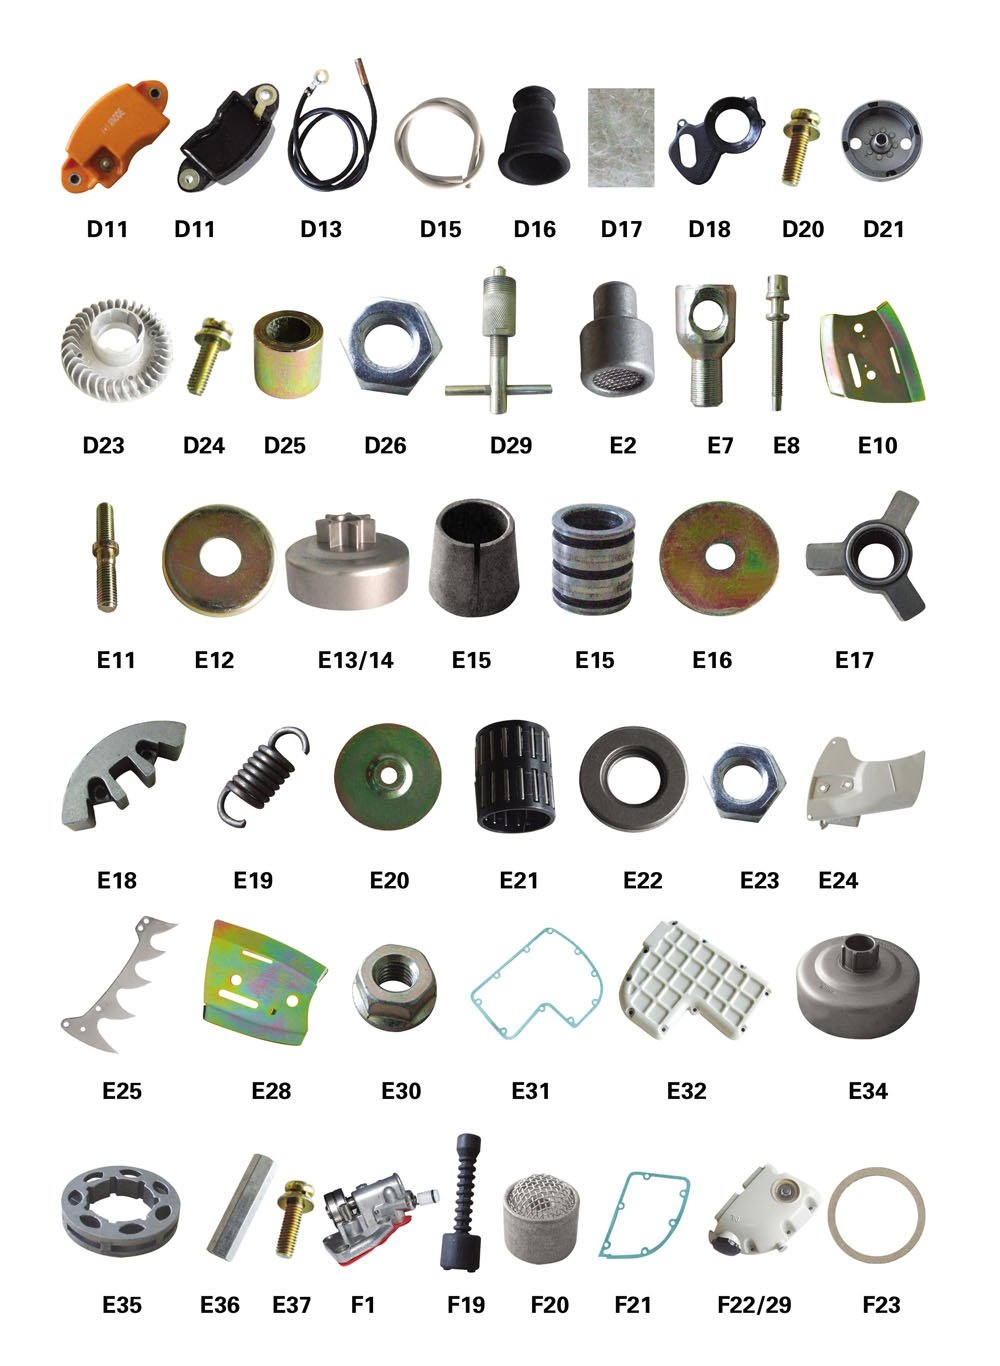 070 Chain Saw Spare Parts Chainsaw Parts 070 For Garden Machines - Buy  Chainsaw Spare Parts,Chainsaw Parts,Chainsaw Parts 070 Product on  Alibaba com